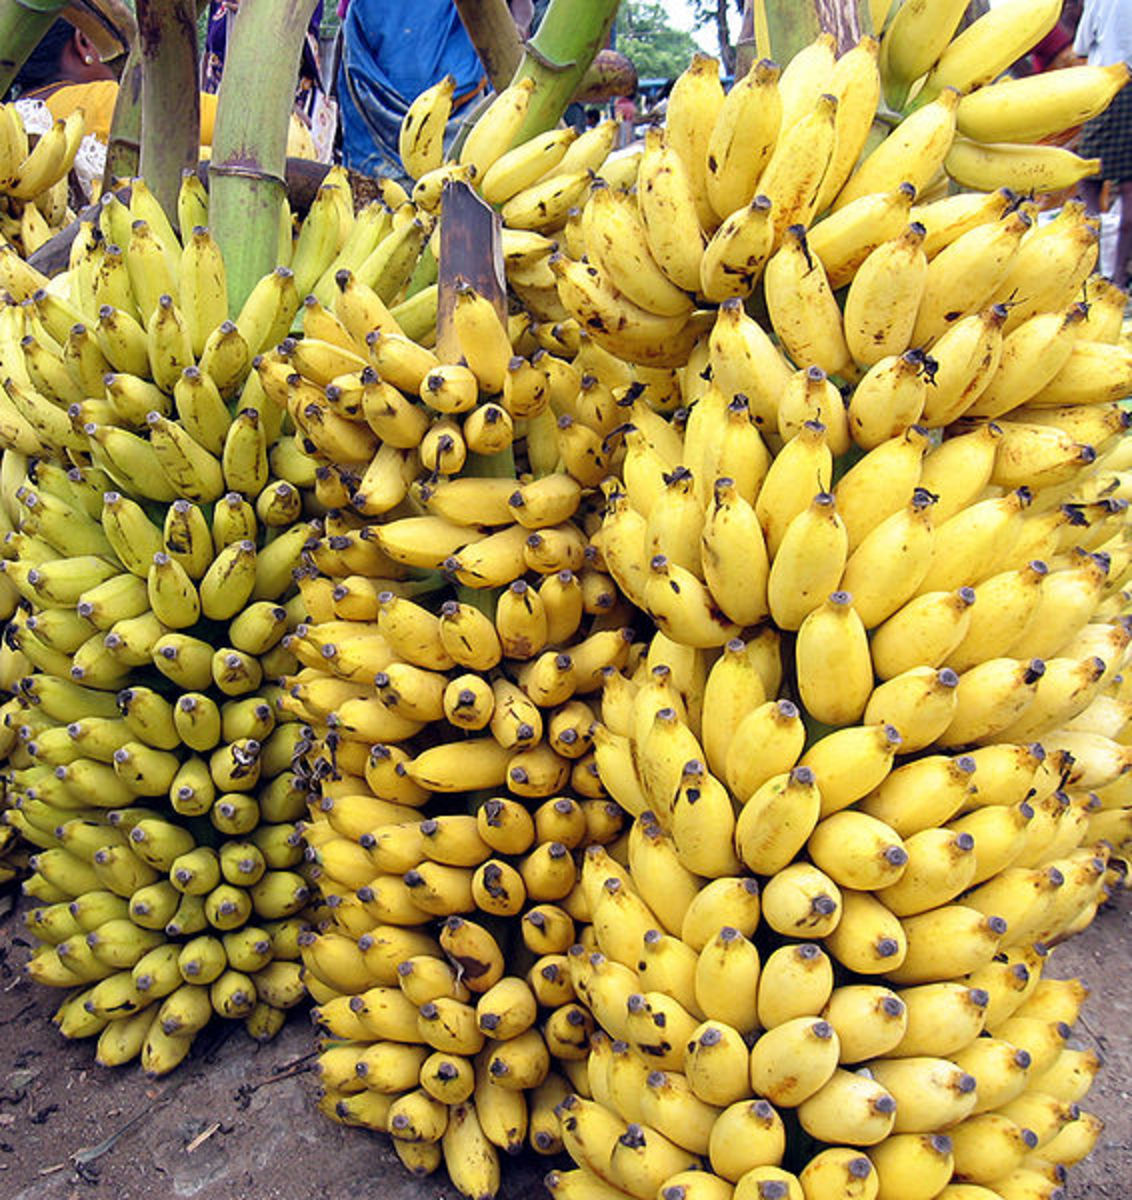 Ripe Bananas, source: Wikipedia